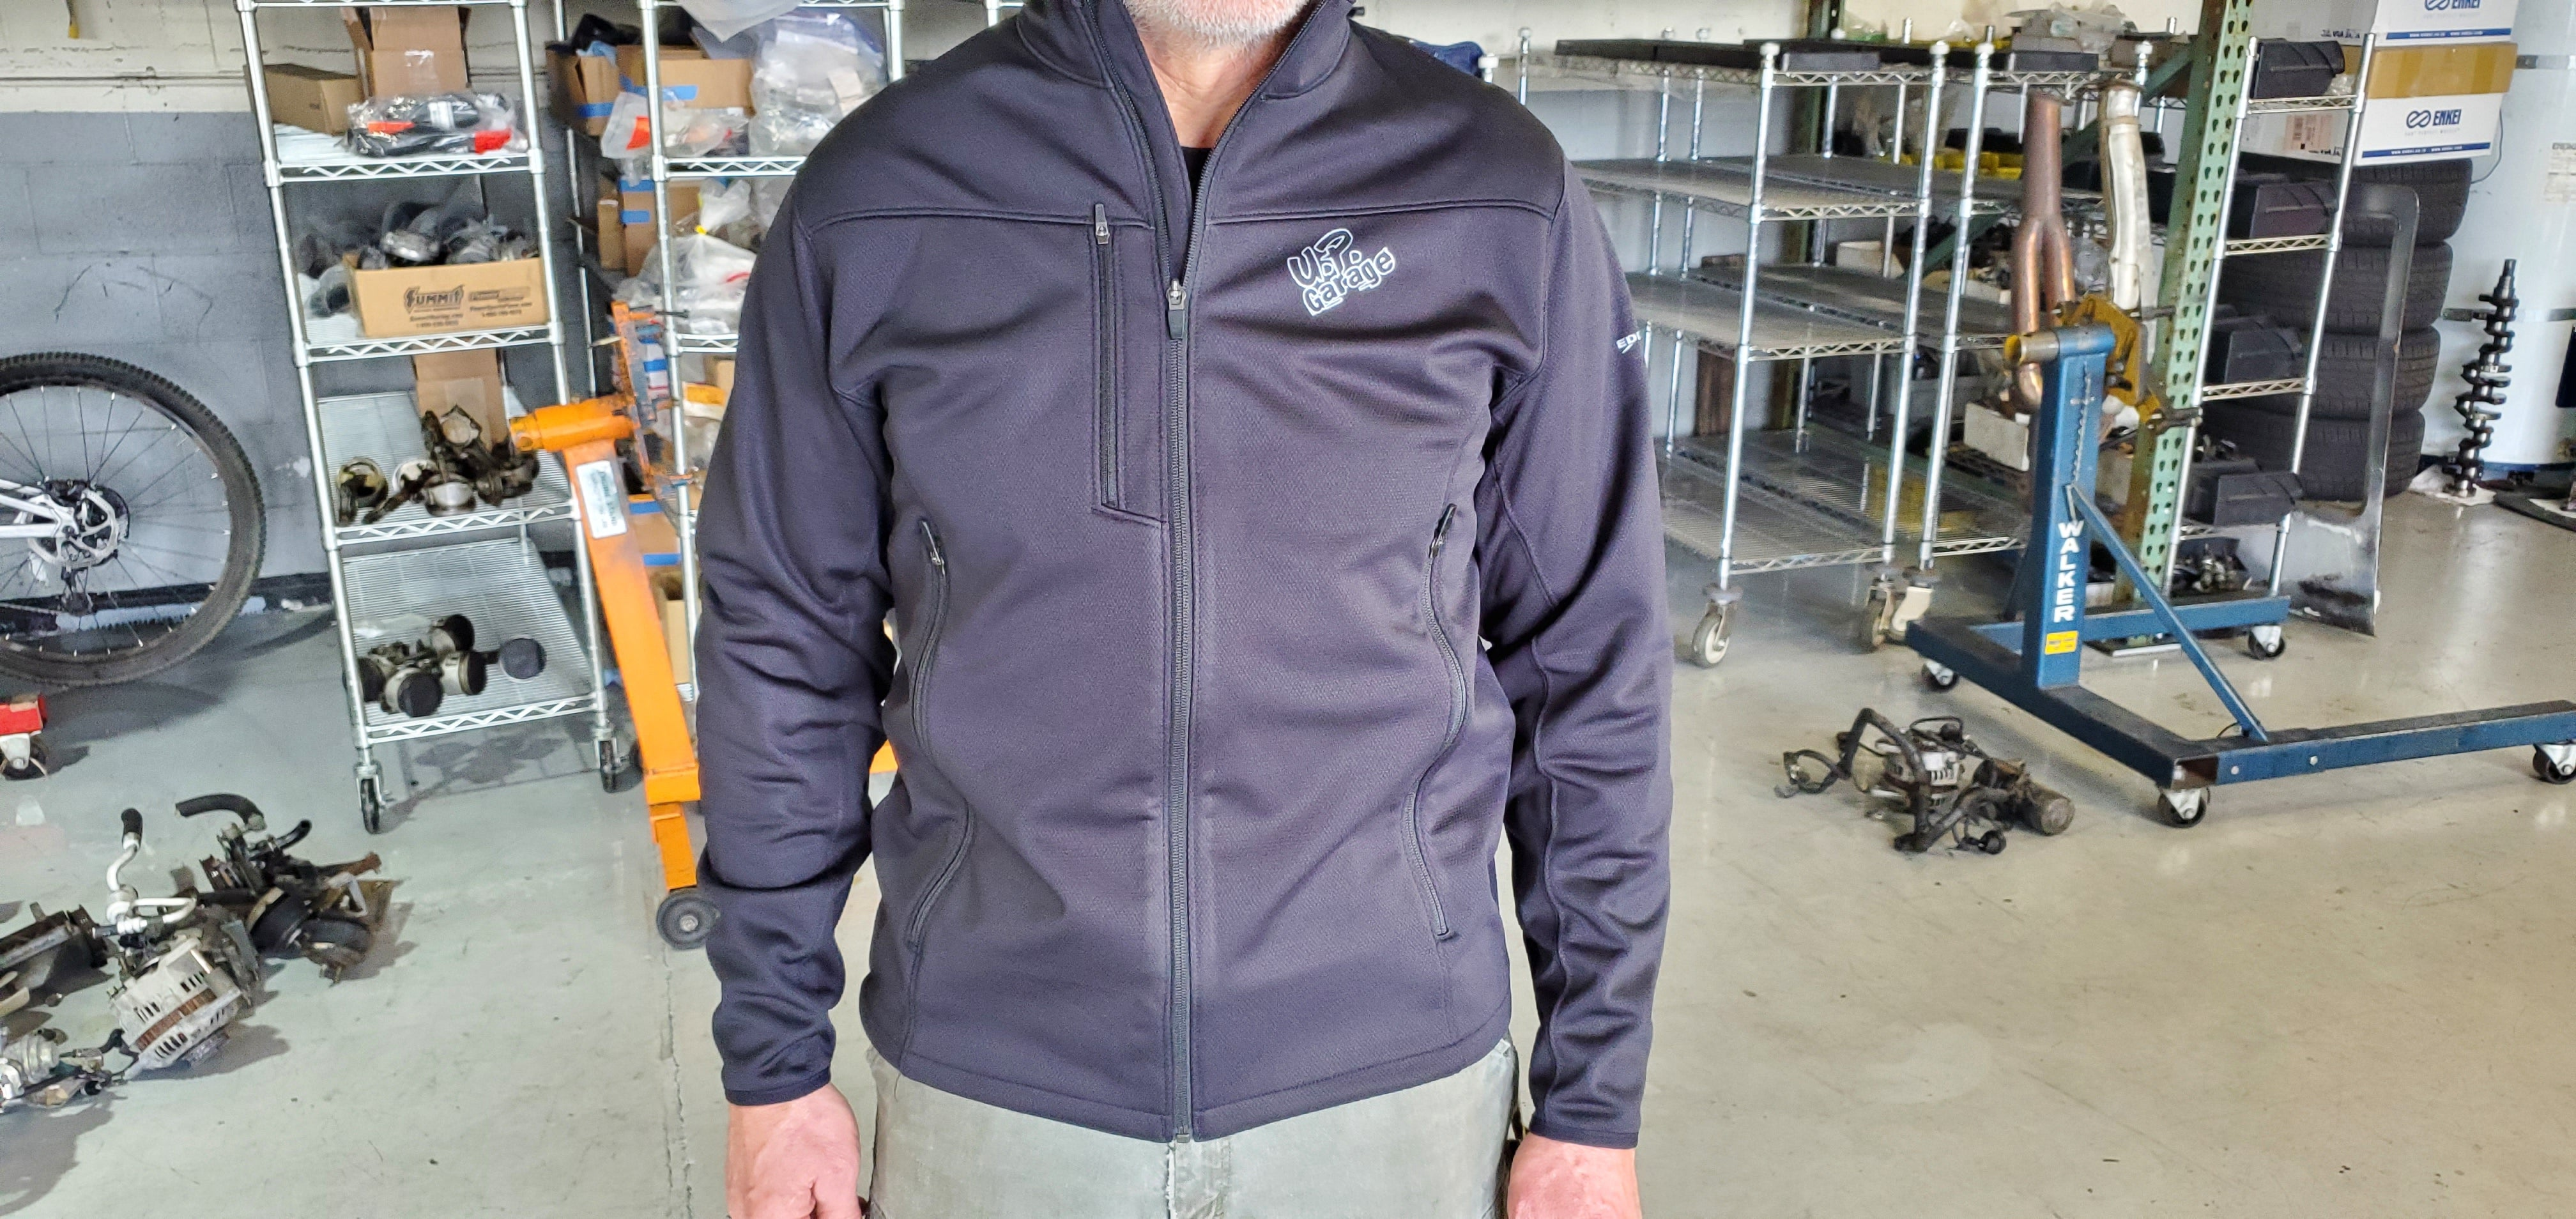 U.P.G Eddie Bauer Weather-Resist Soft Shell Jacket